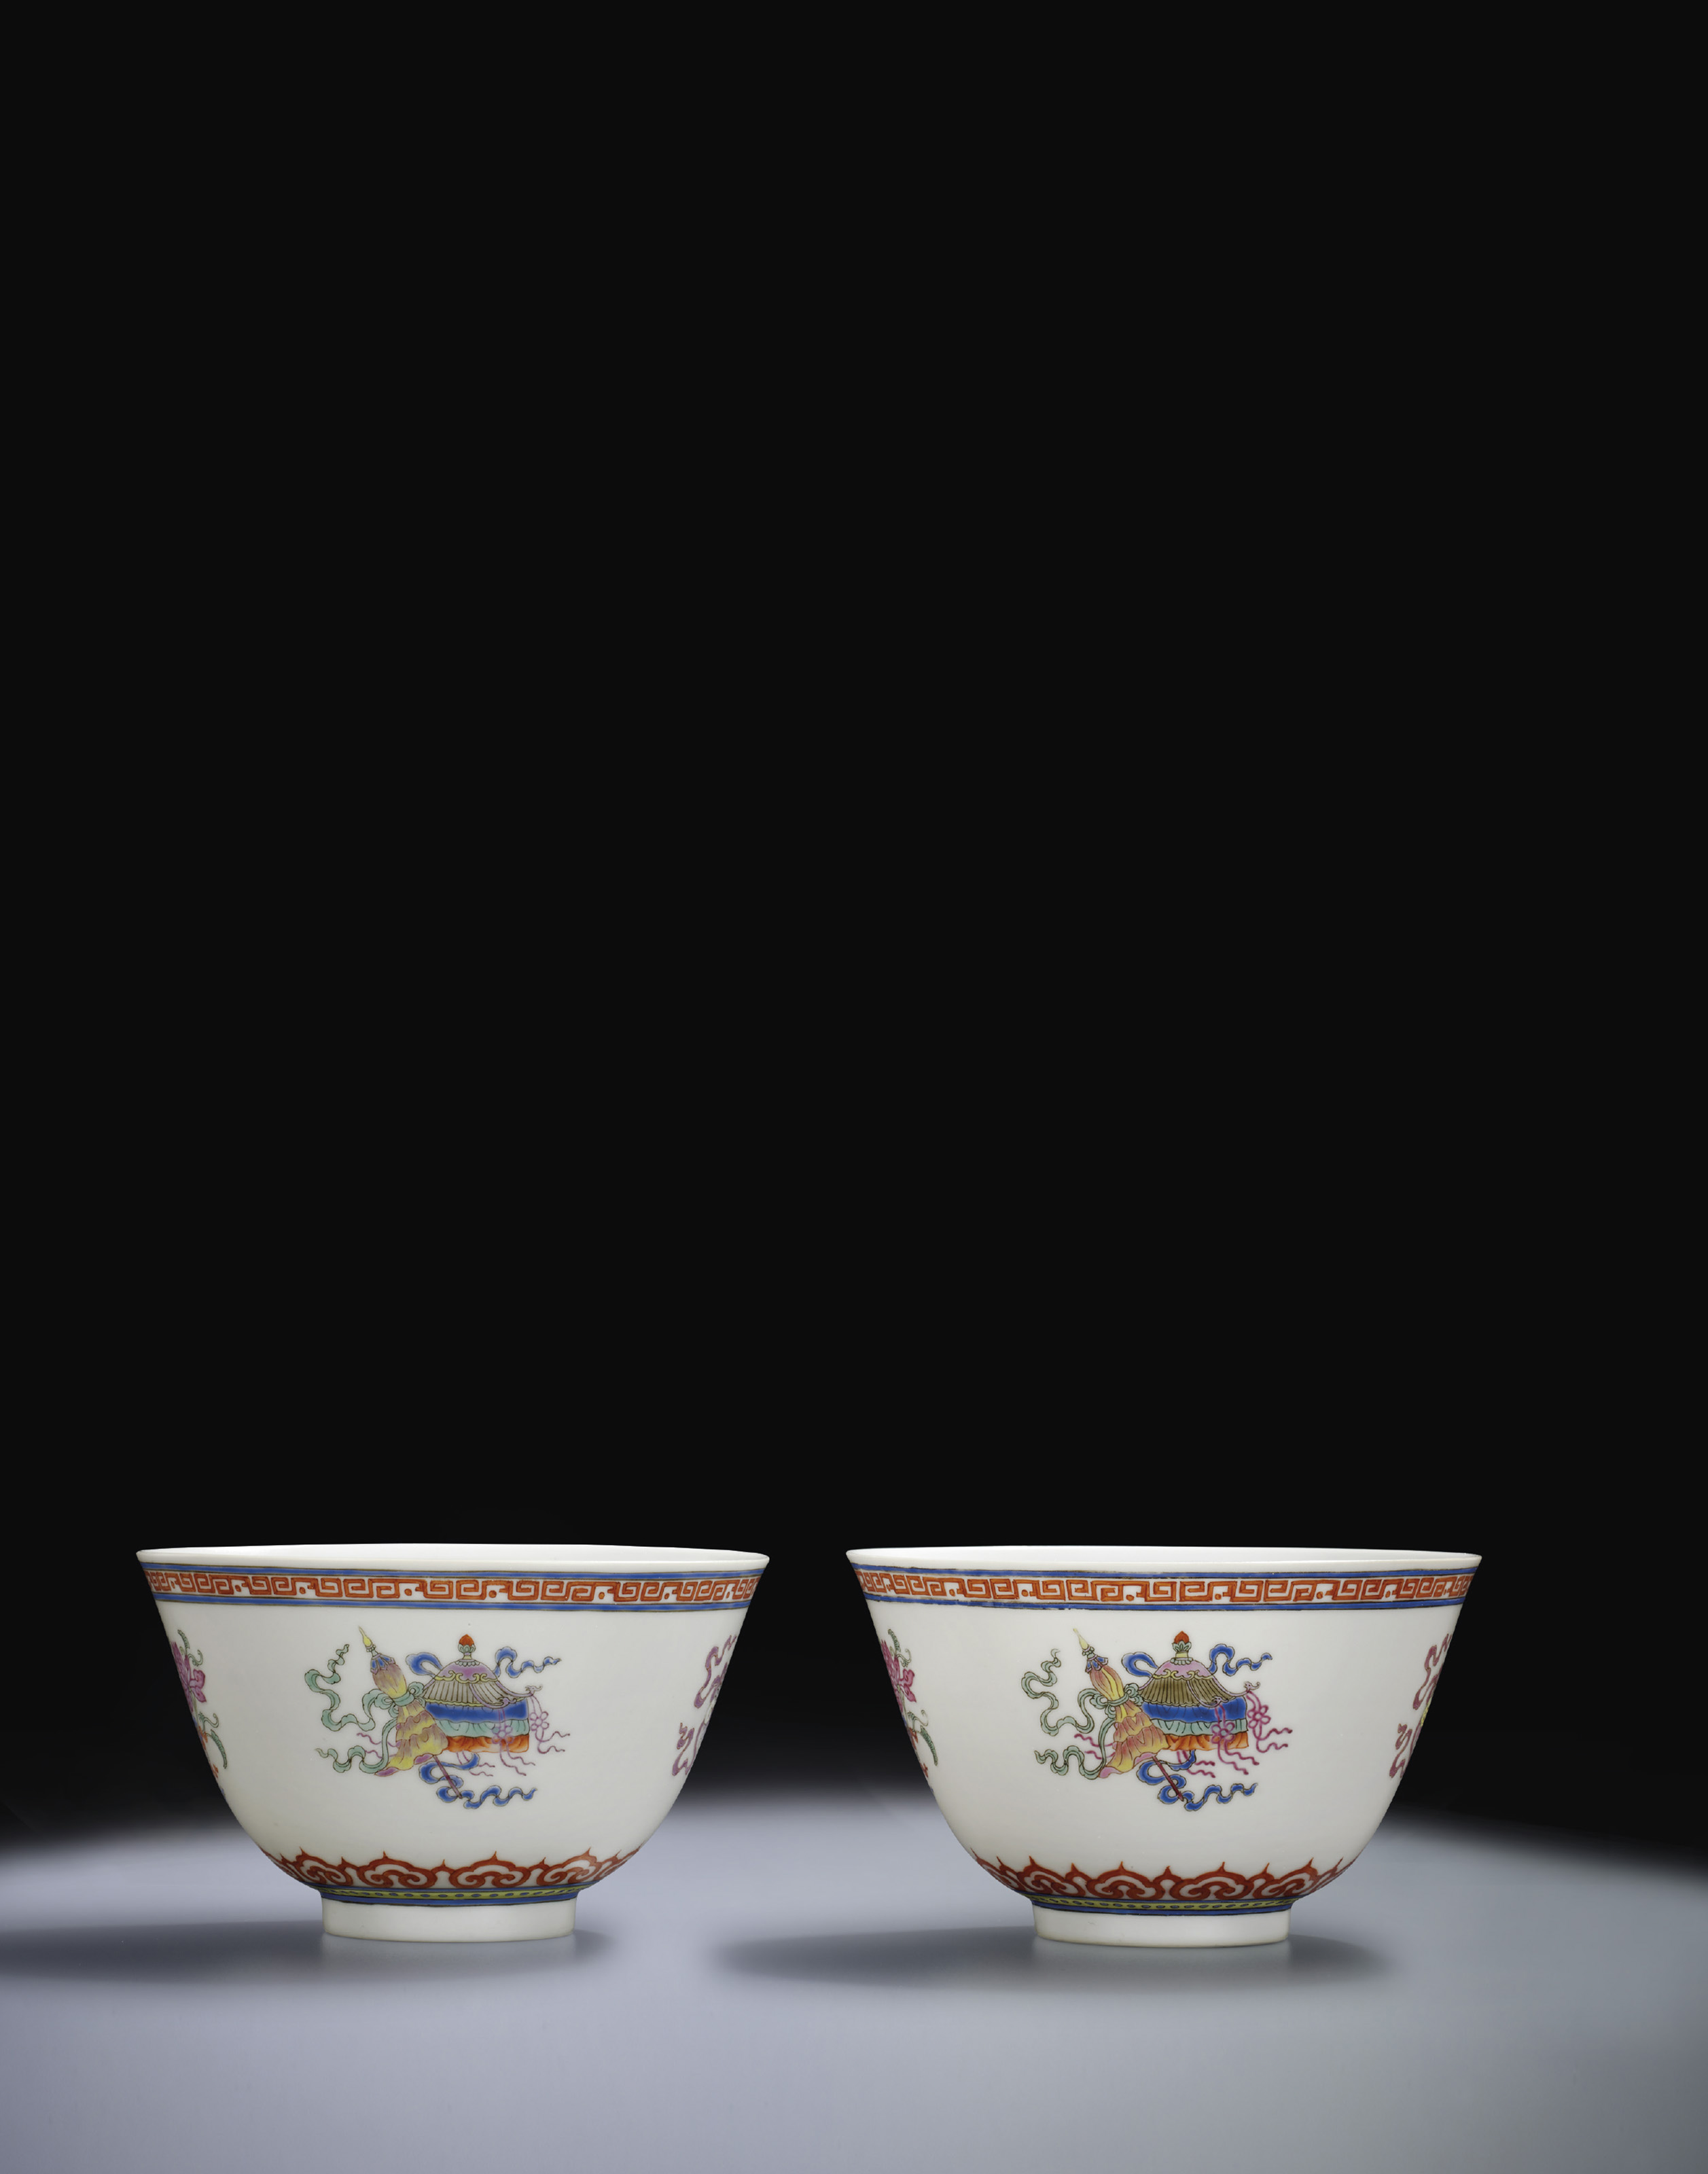 A PAIR OF FAMILLE ROSE 'BAJIXIANG' BOWLS